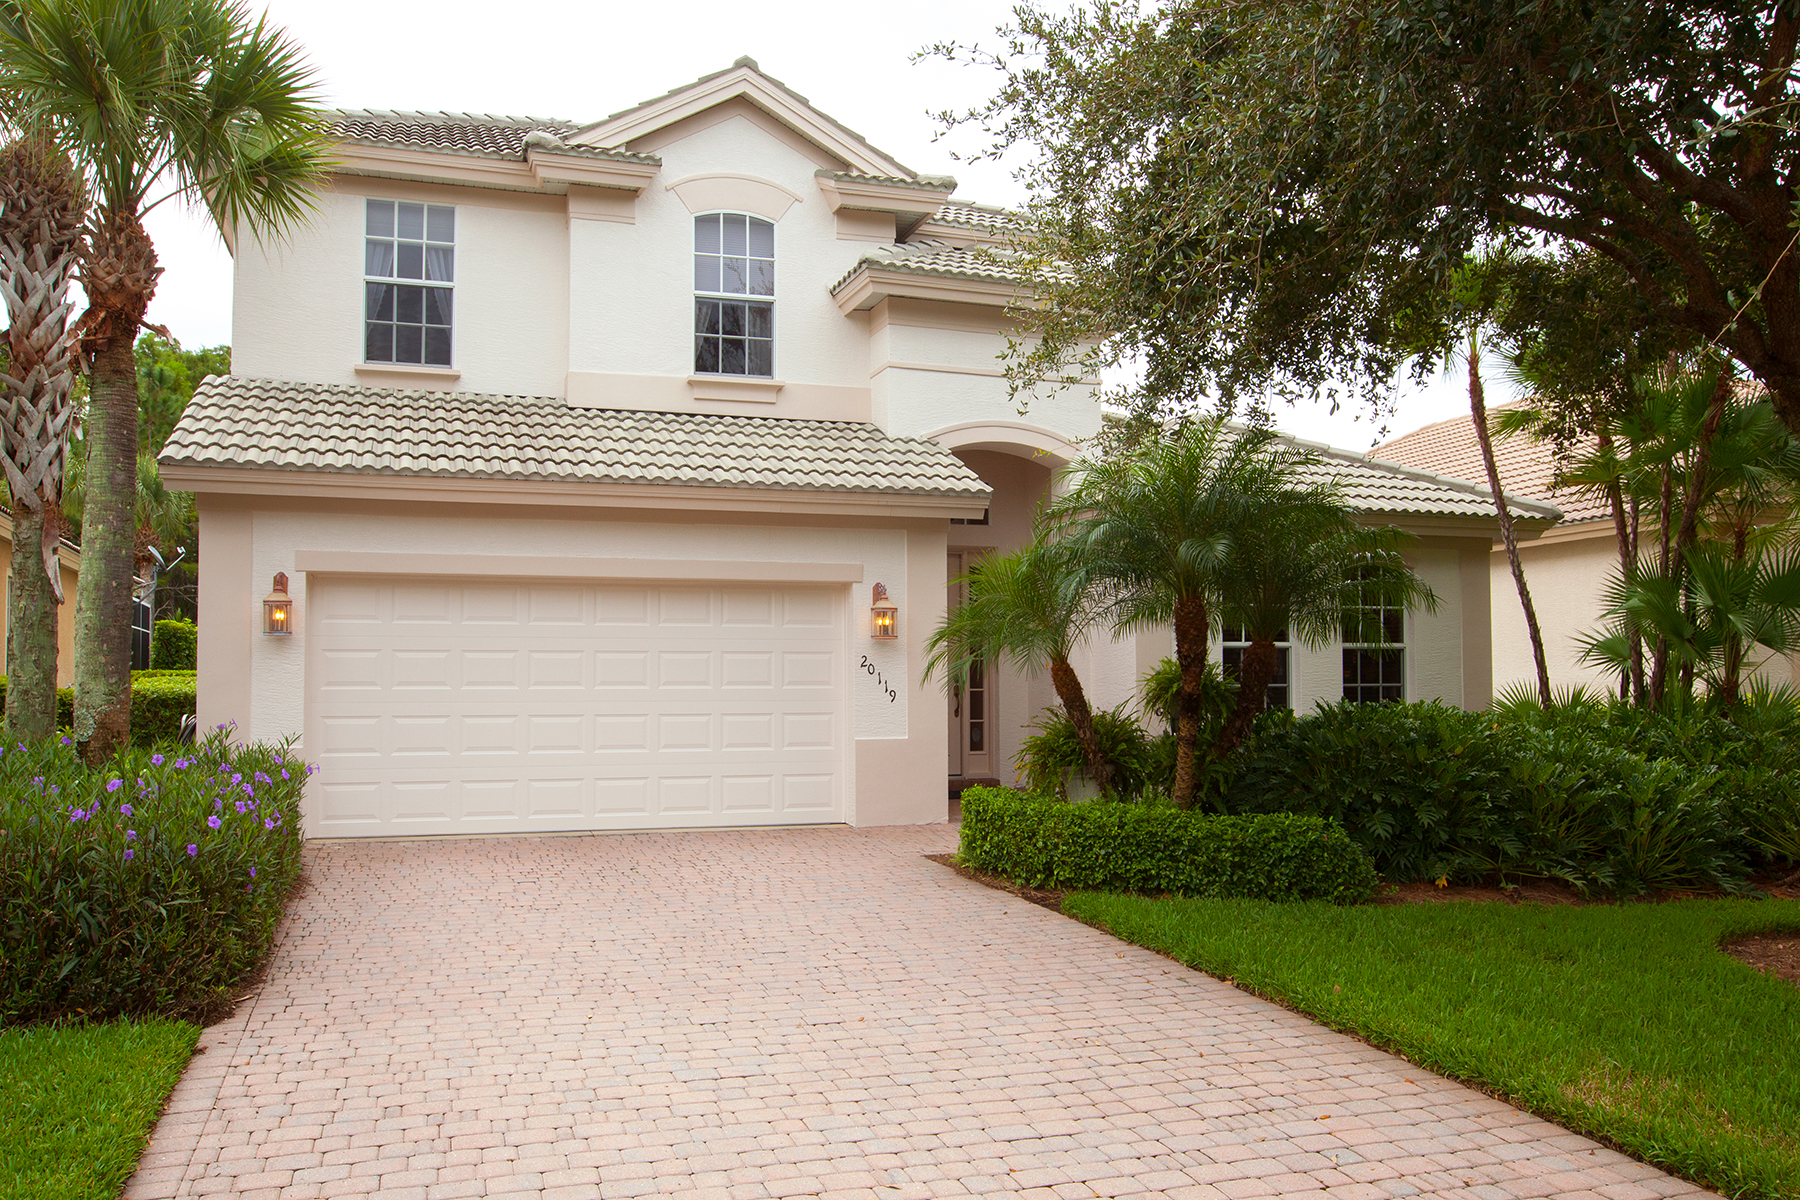 Property For Sale at GRANDEZZA - CYPRESS COVE